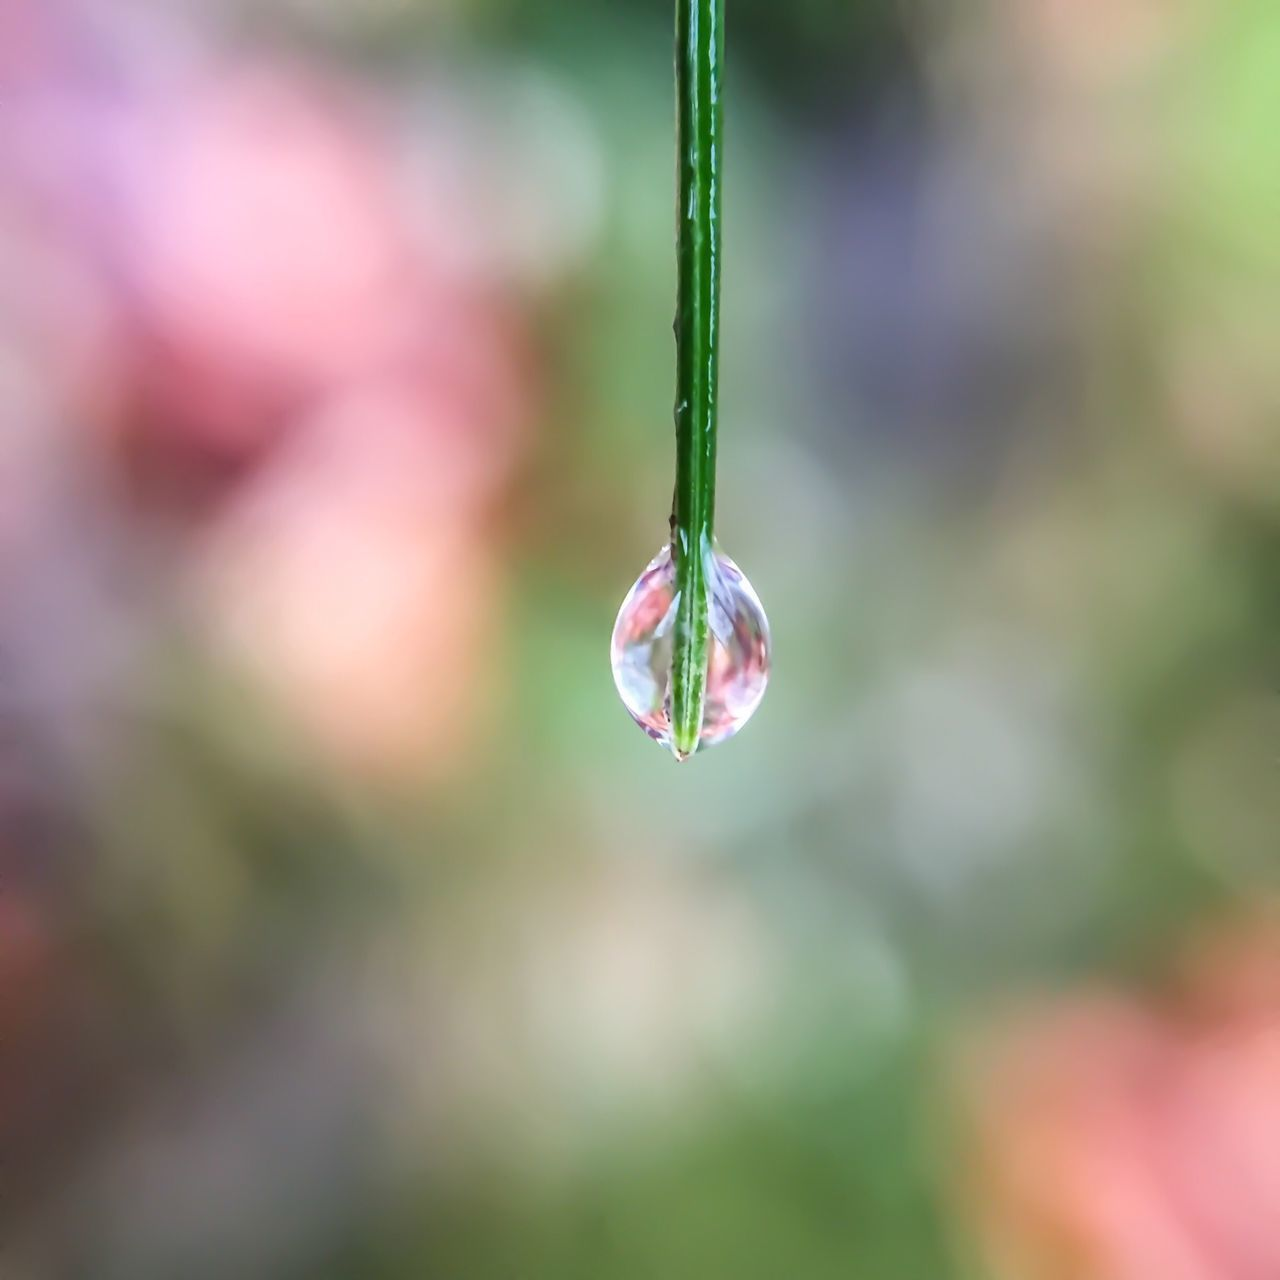 Water Drop On Blade Of Grass